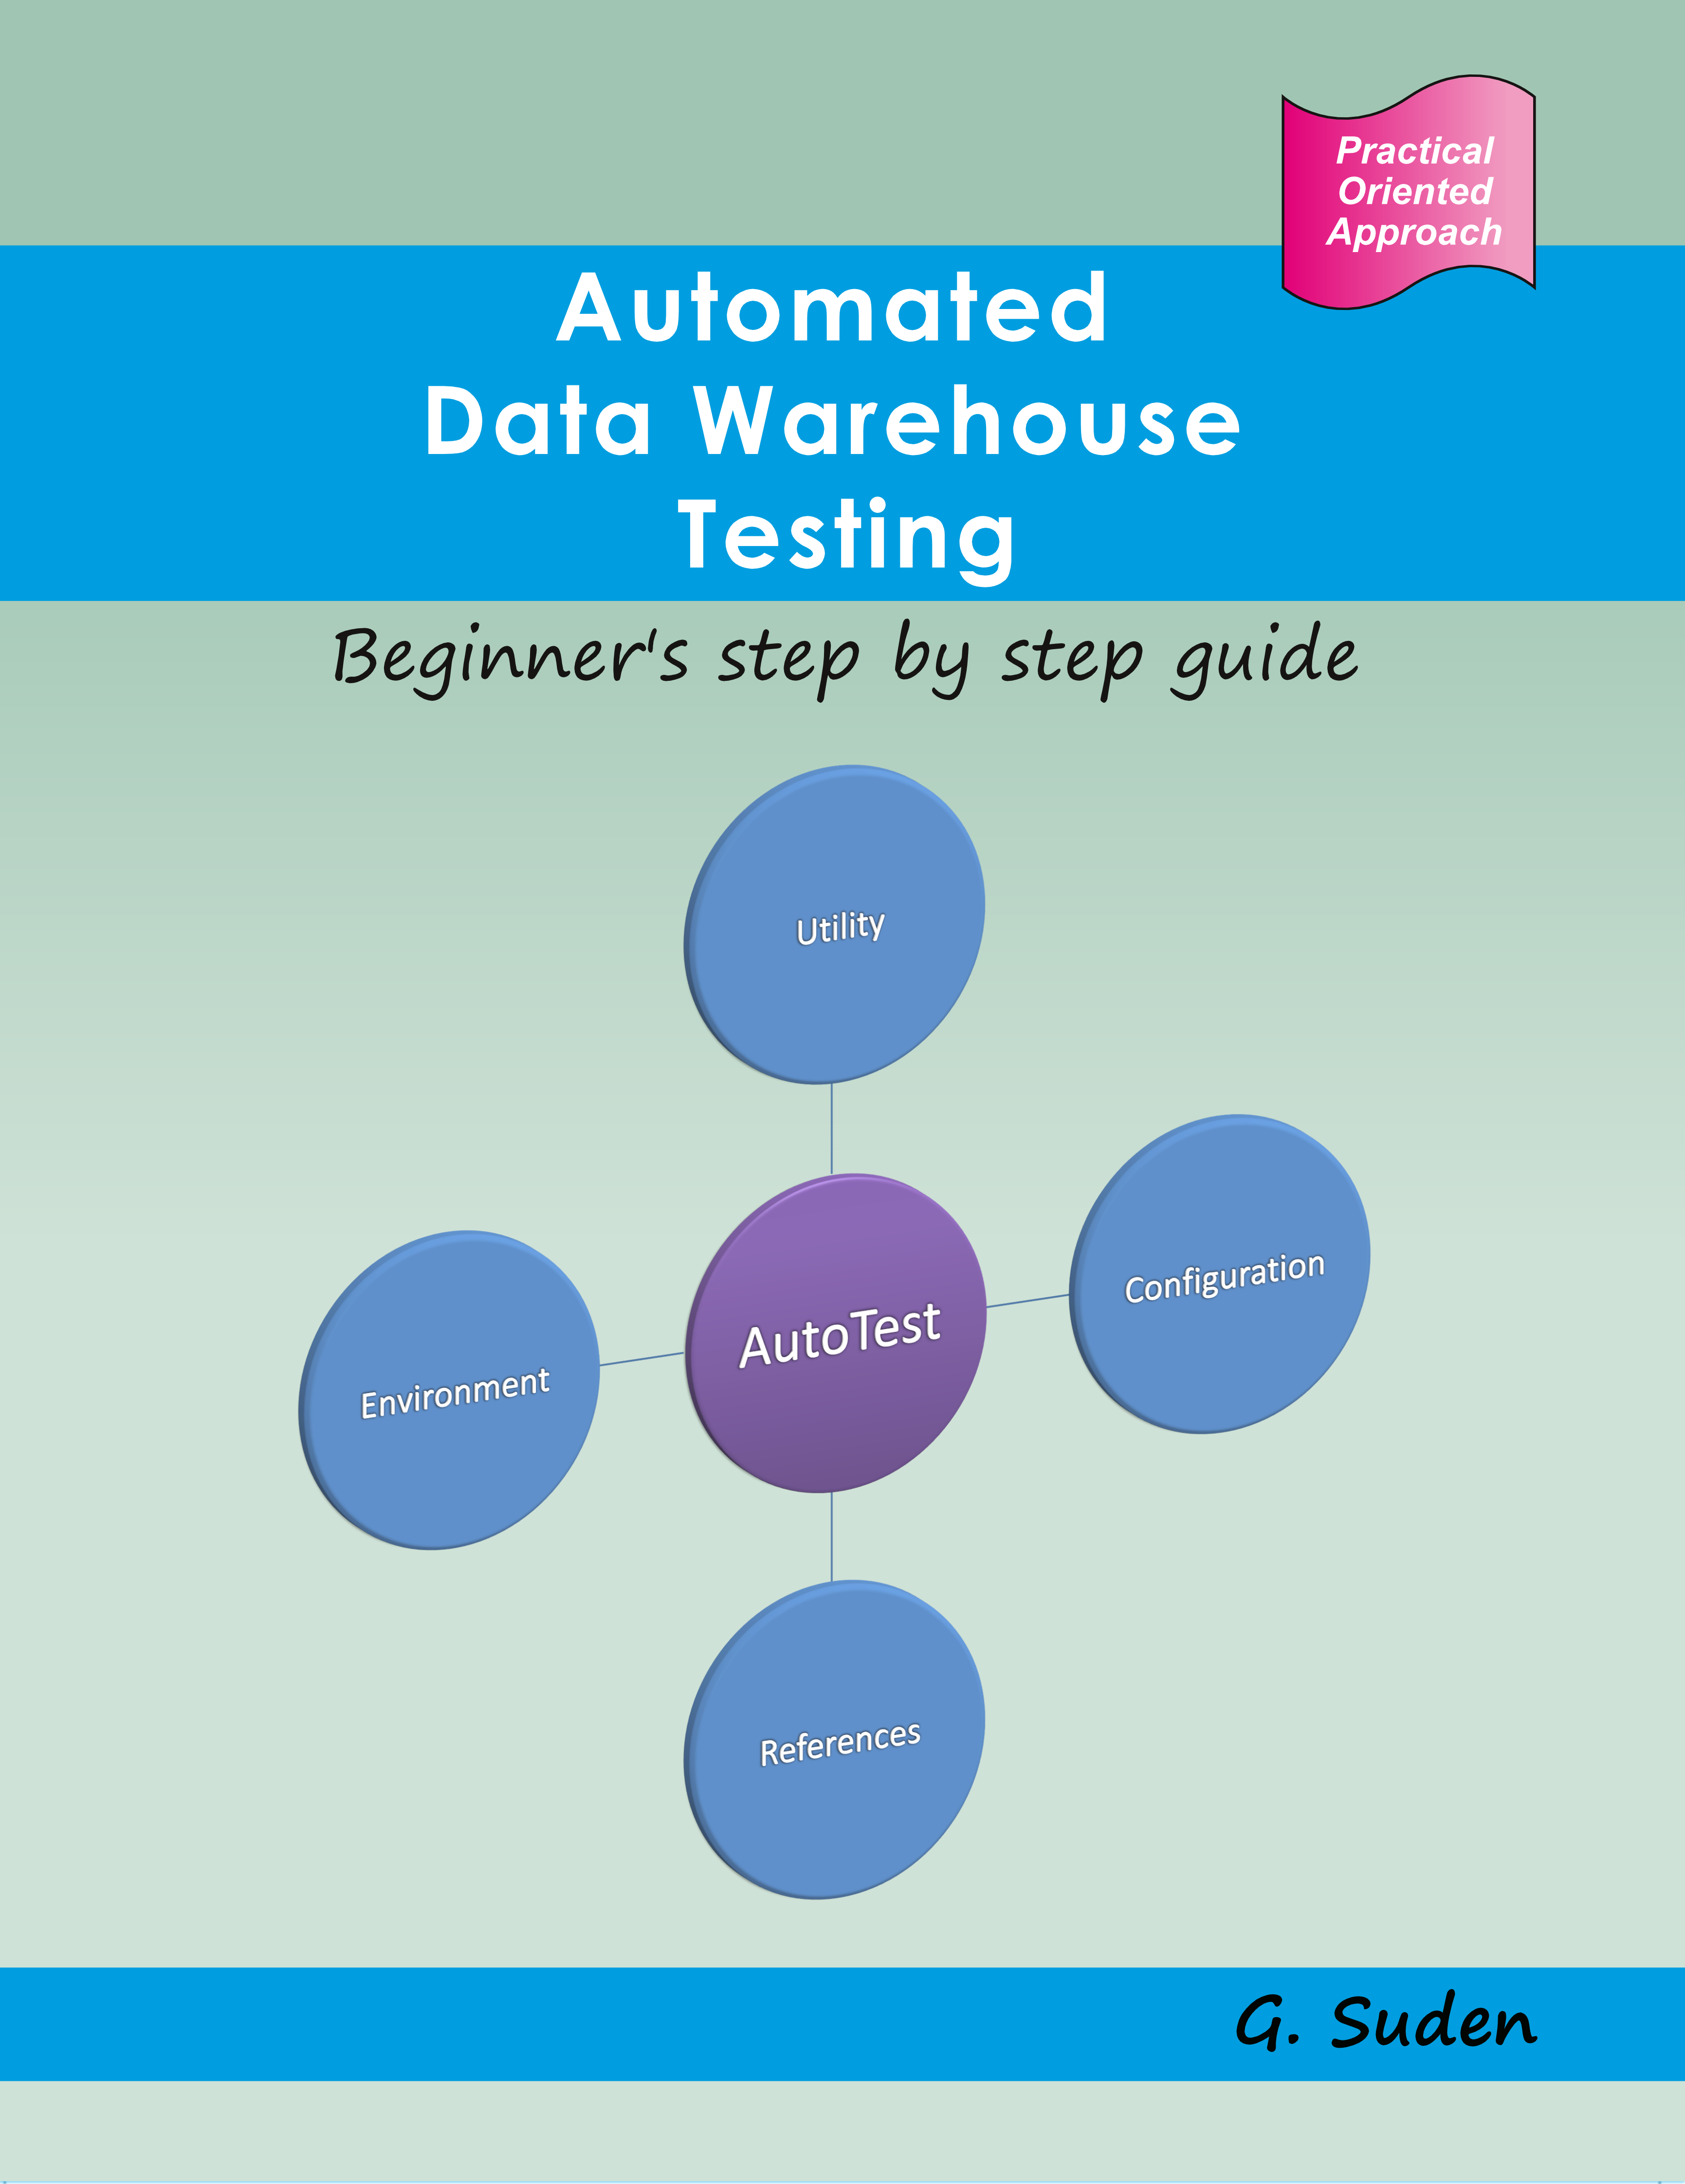 Automate Data Warehouse Testing